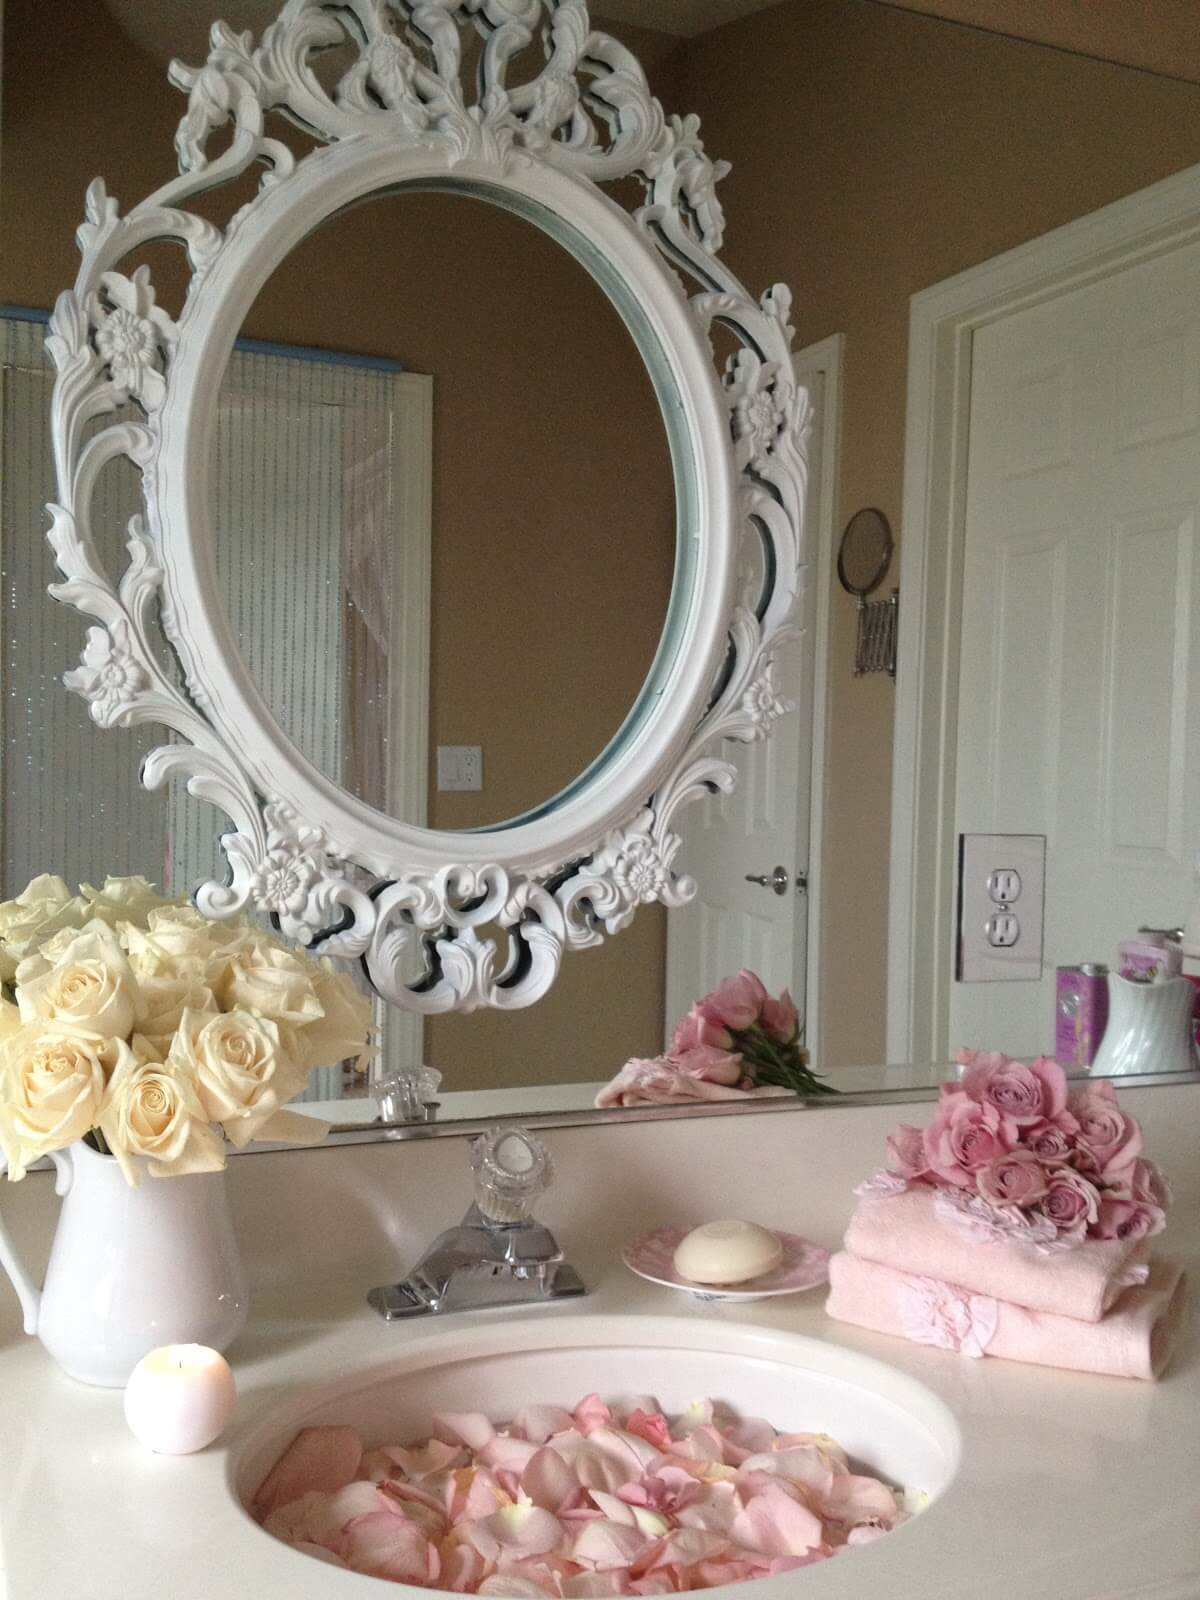 8. Pretty Vintage Above Sink Mirror Frame